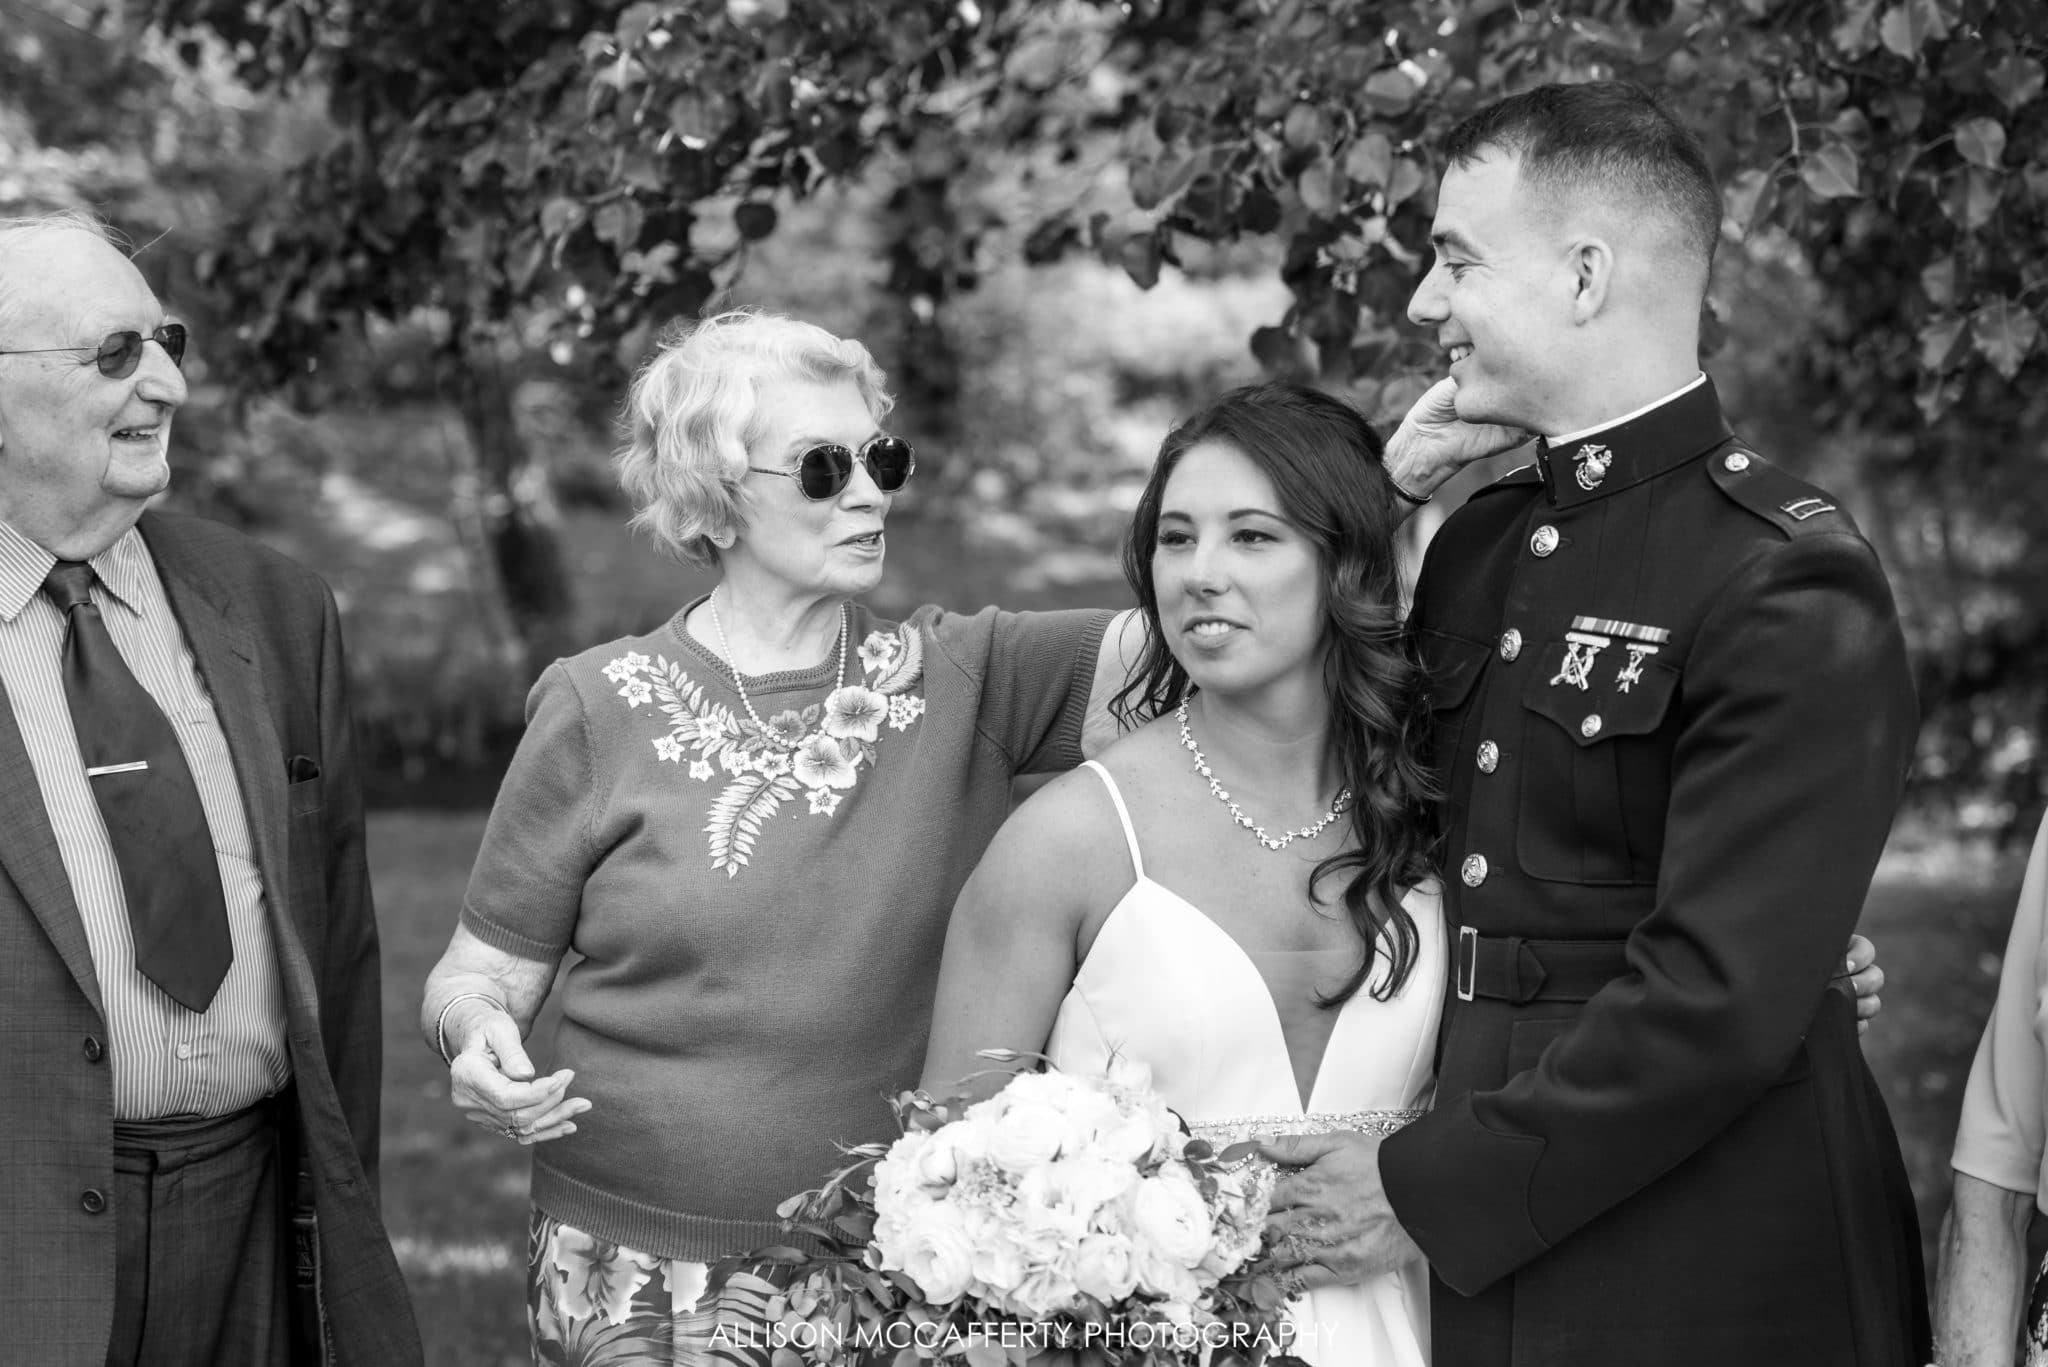 Grandmother touching grandson's face at his wedding